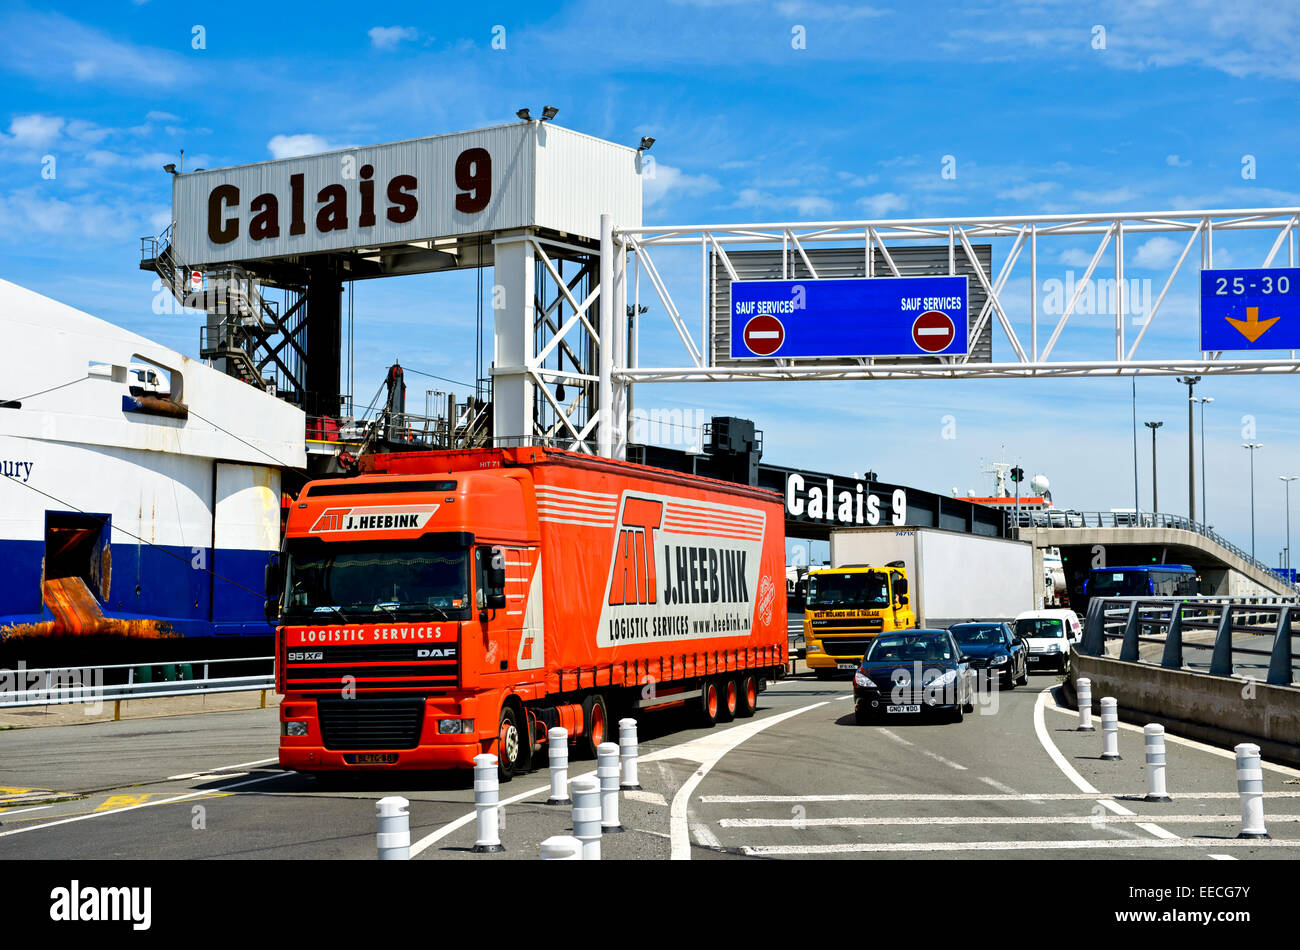 Trucks and cars disembarking from a cross-channel ferry at the cross-channel terminal 9 of the port of Calais, France - Stock Image